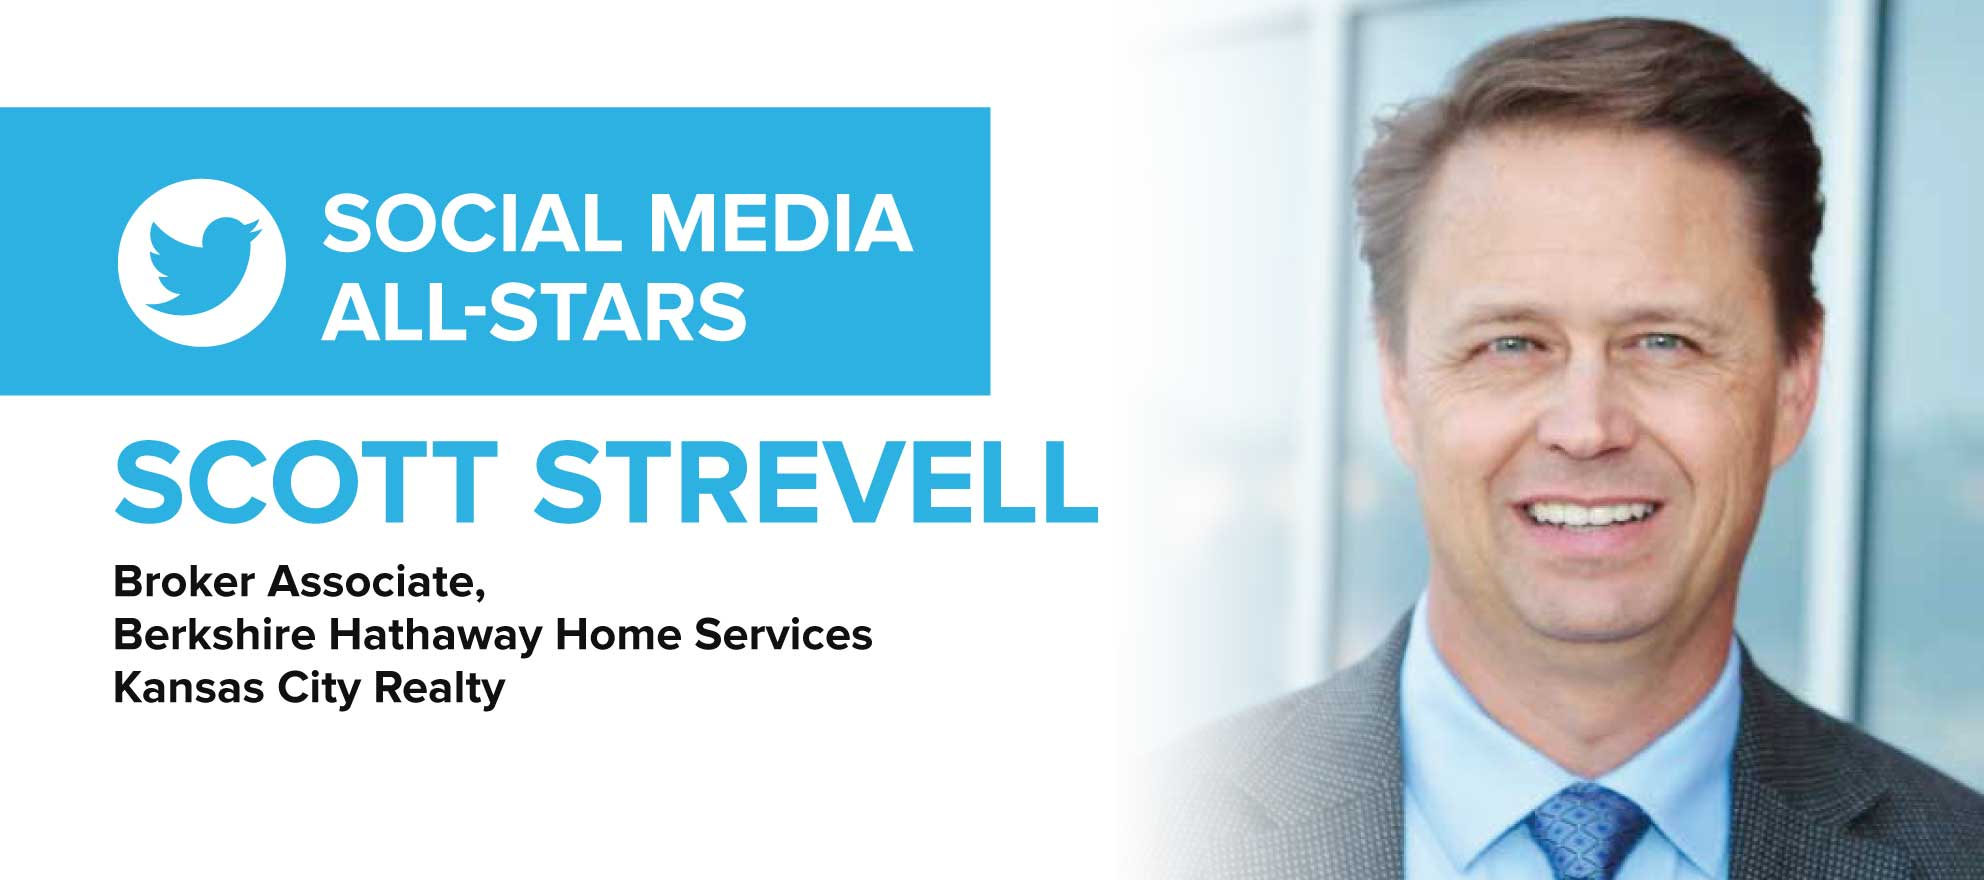 Scott Strevell: 'Local content produces our best results'